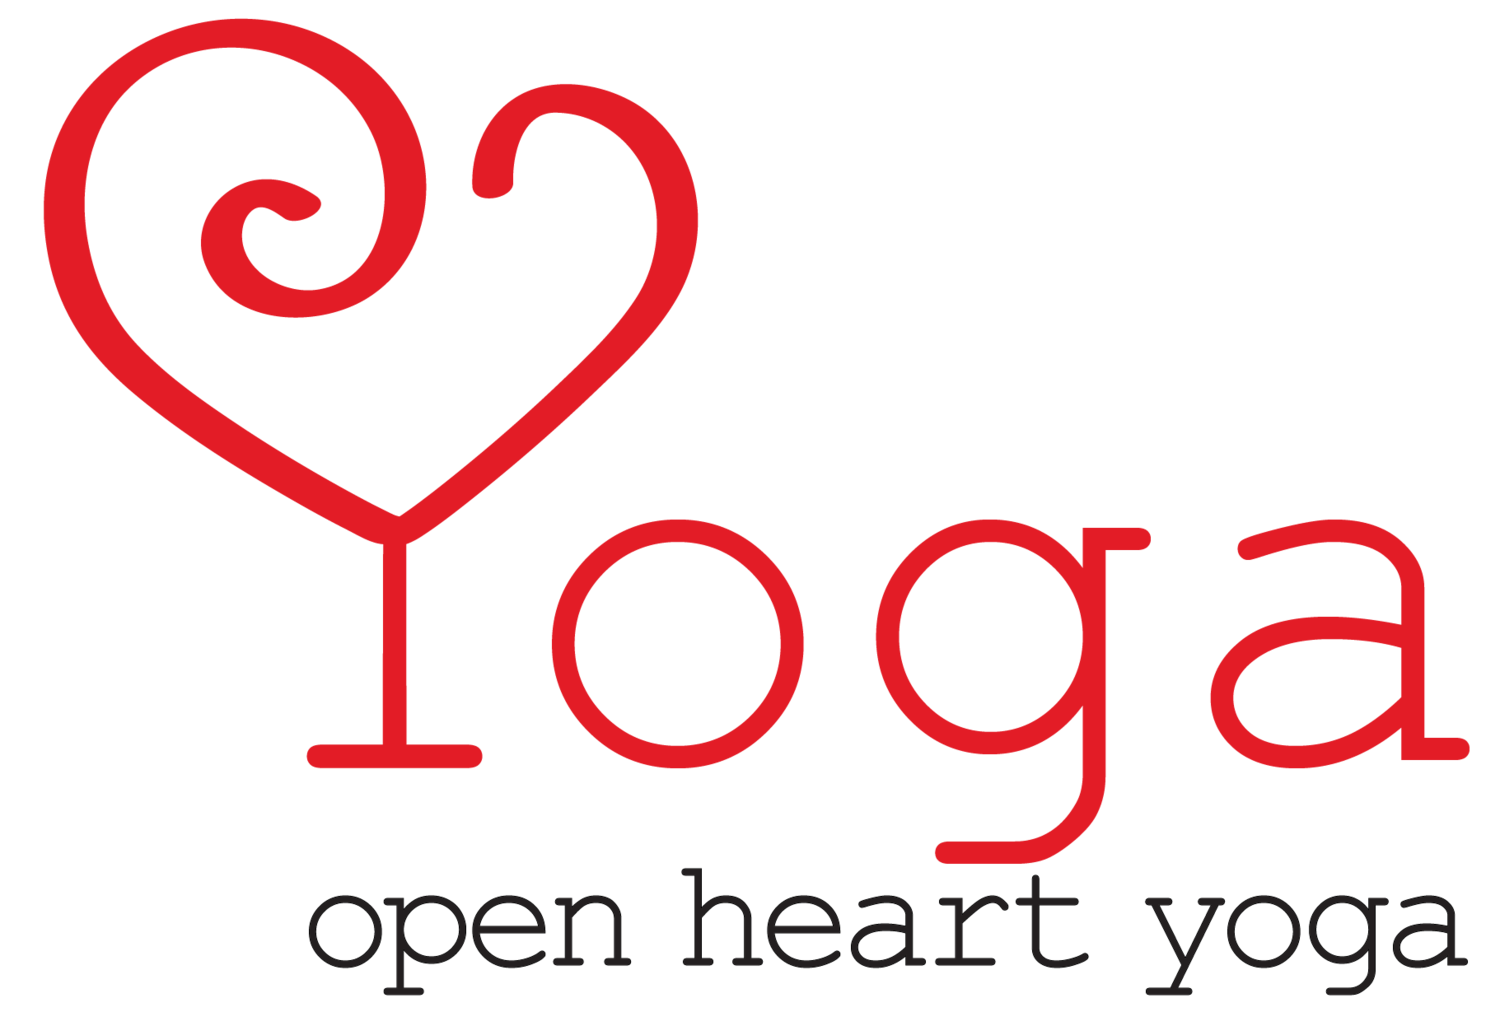 Open Heart Yoga